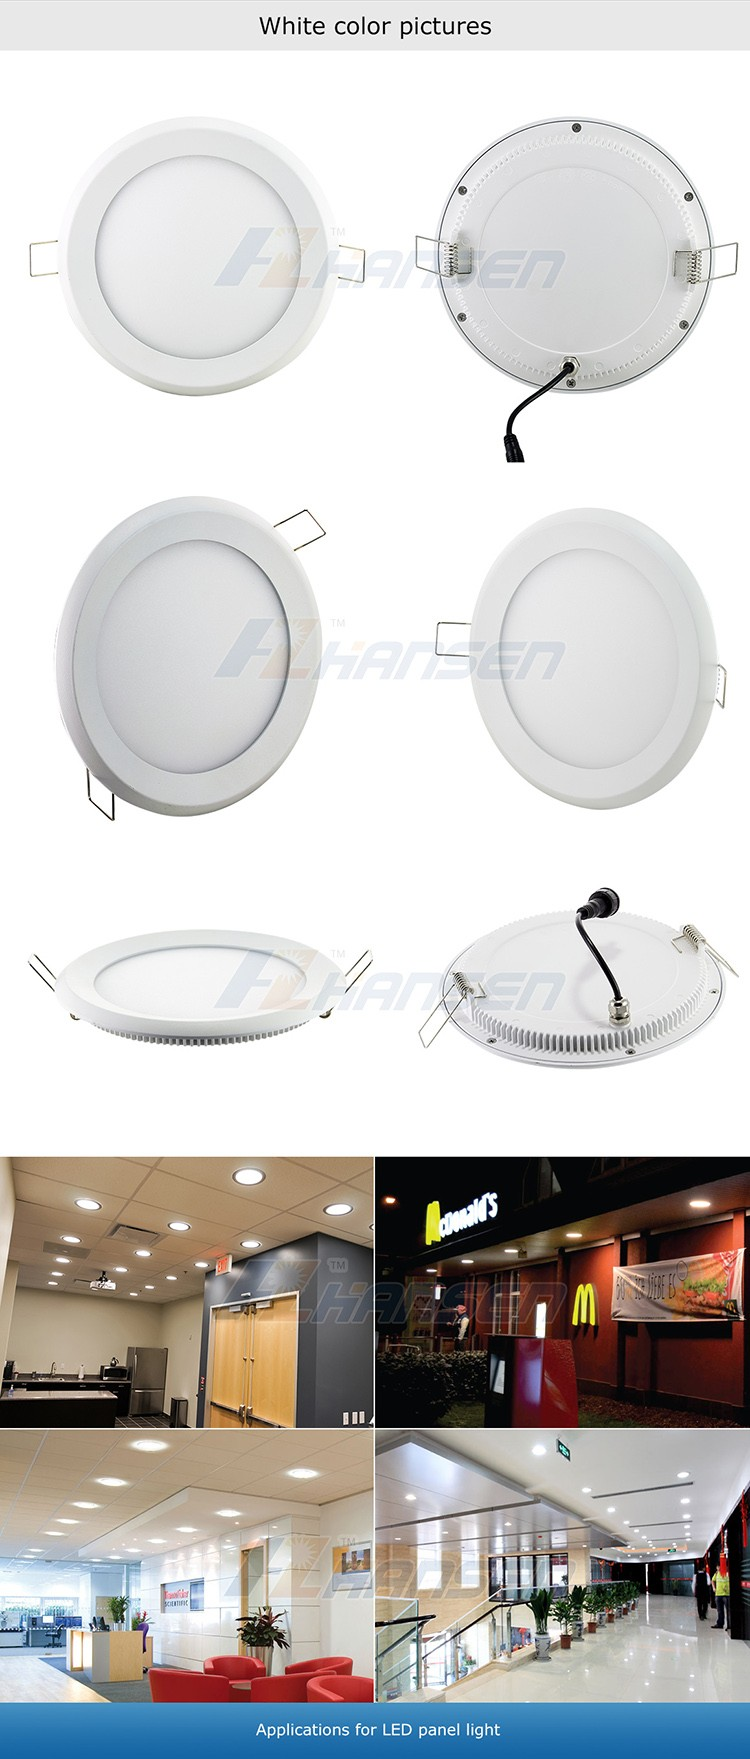 waterproof bathroom plastic wall siding panel led 10 degree beam angle 600x600 ceiling panel light